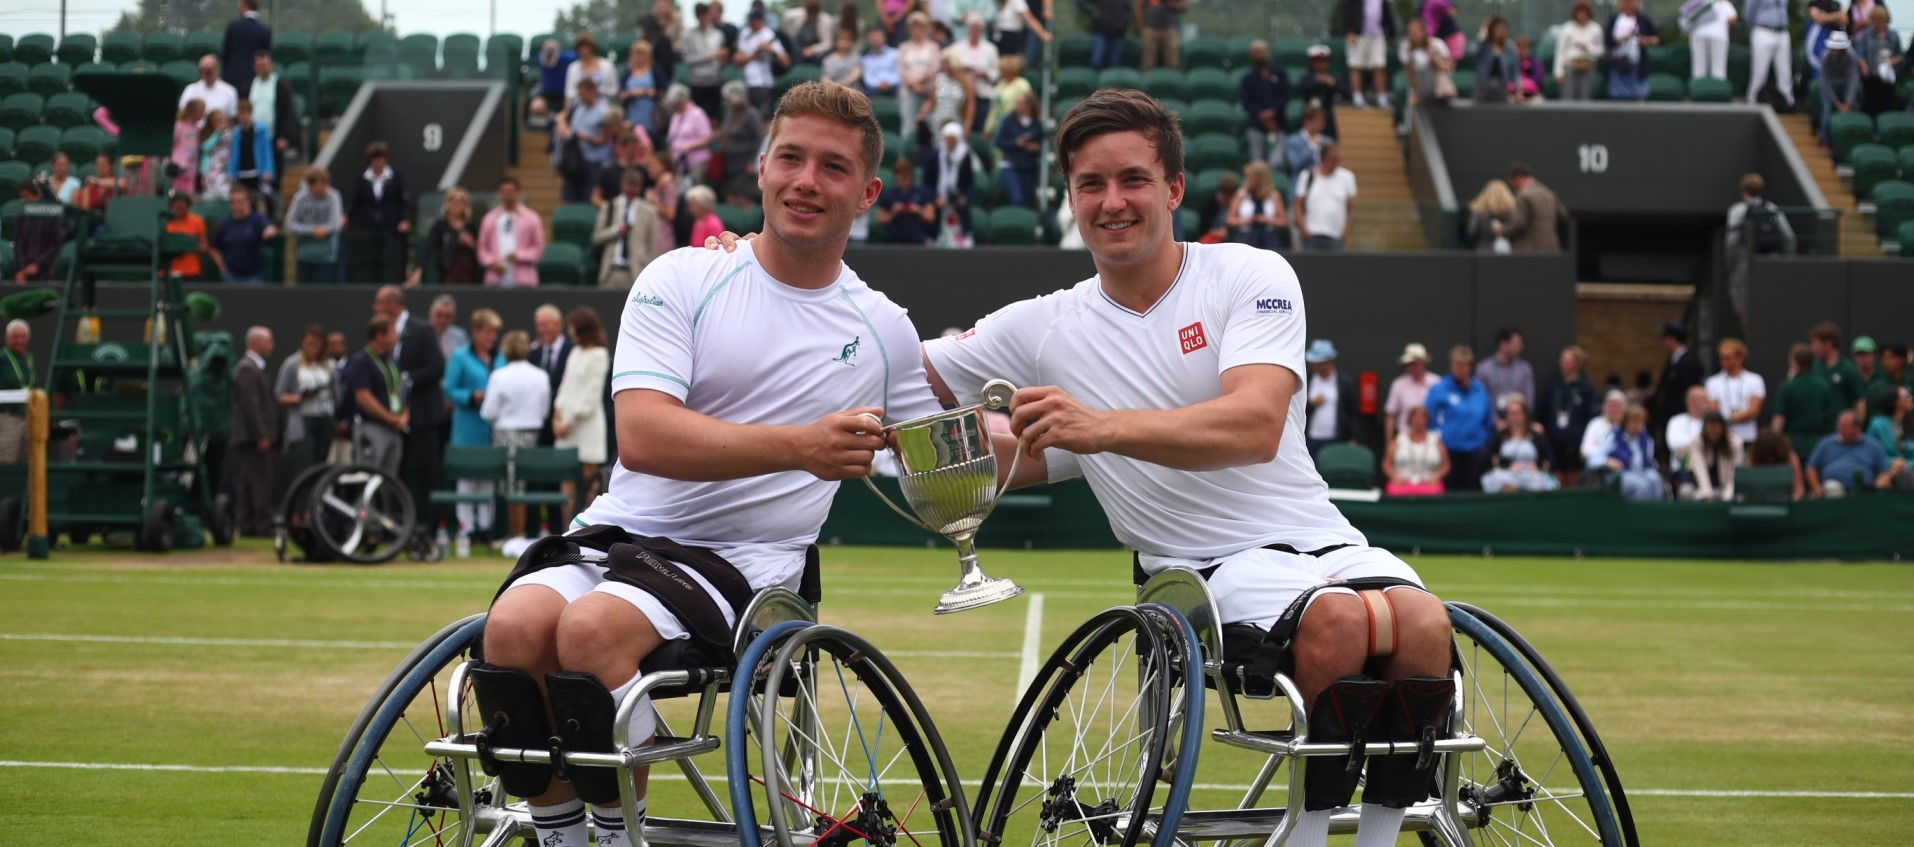 Brits Hewett and Reid Retain Wimbledon Doubles Title in Thrilling Final